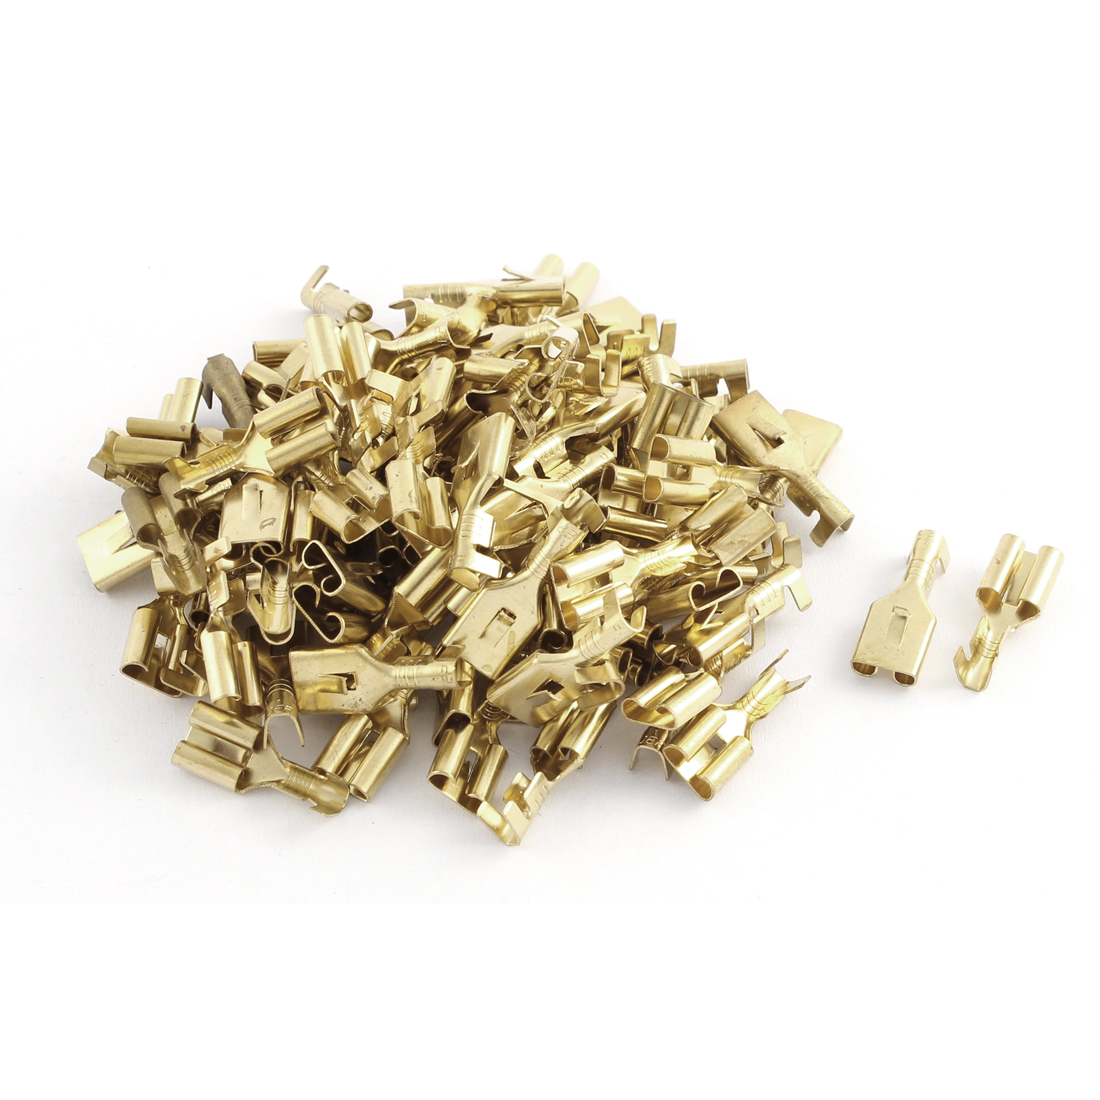 100 Pcs 6.3mm Insert Spring Solder Cold Pressed Terminal Connector